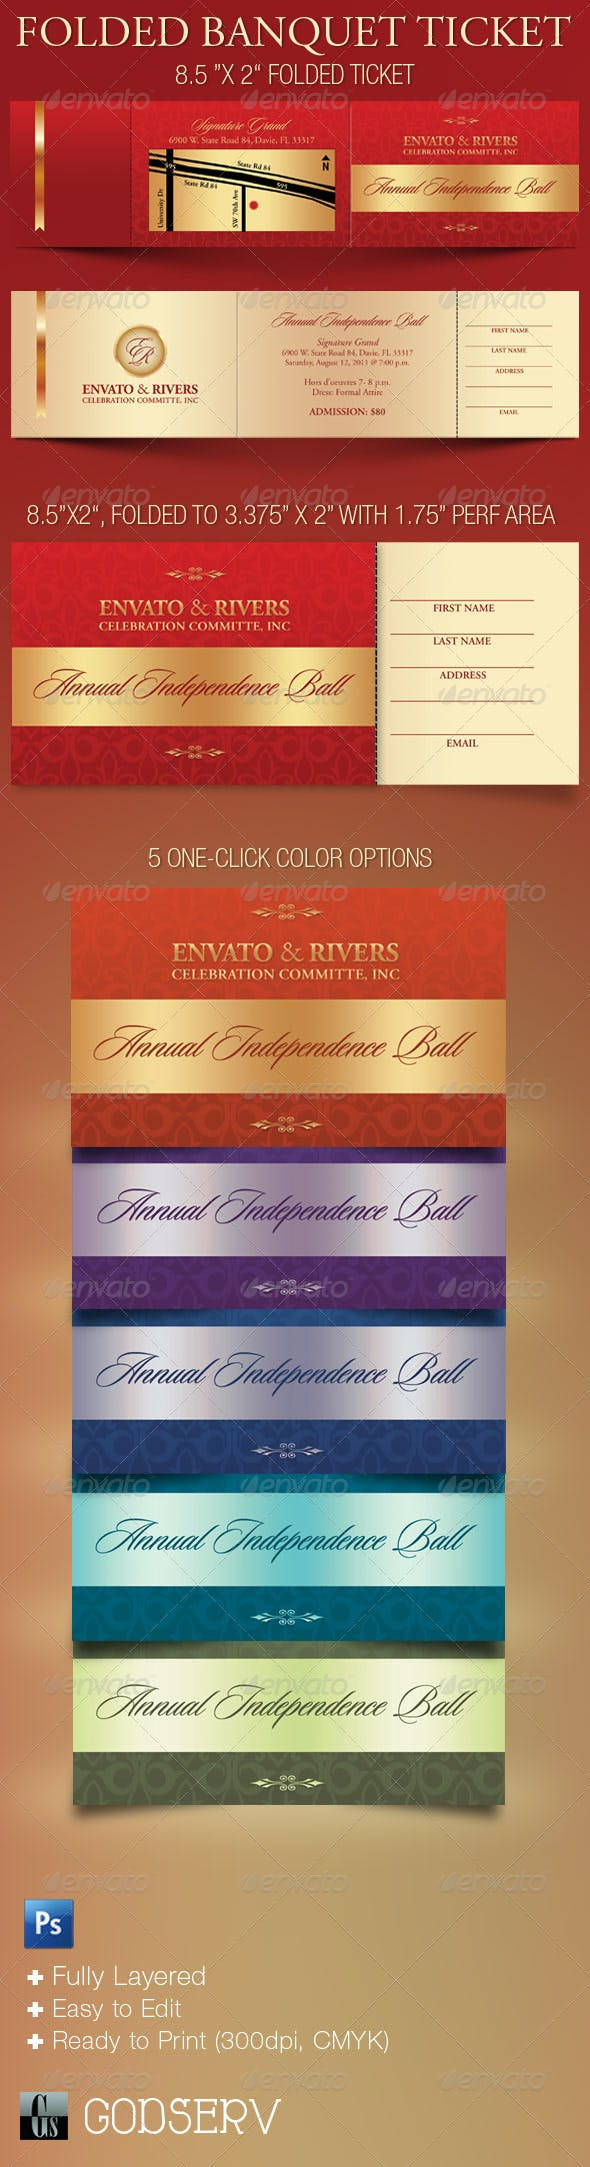 folded banquet ticket template by godserv graphicriver